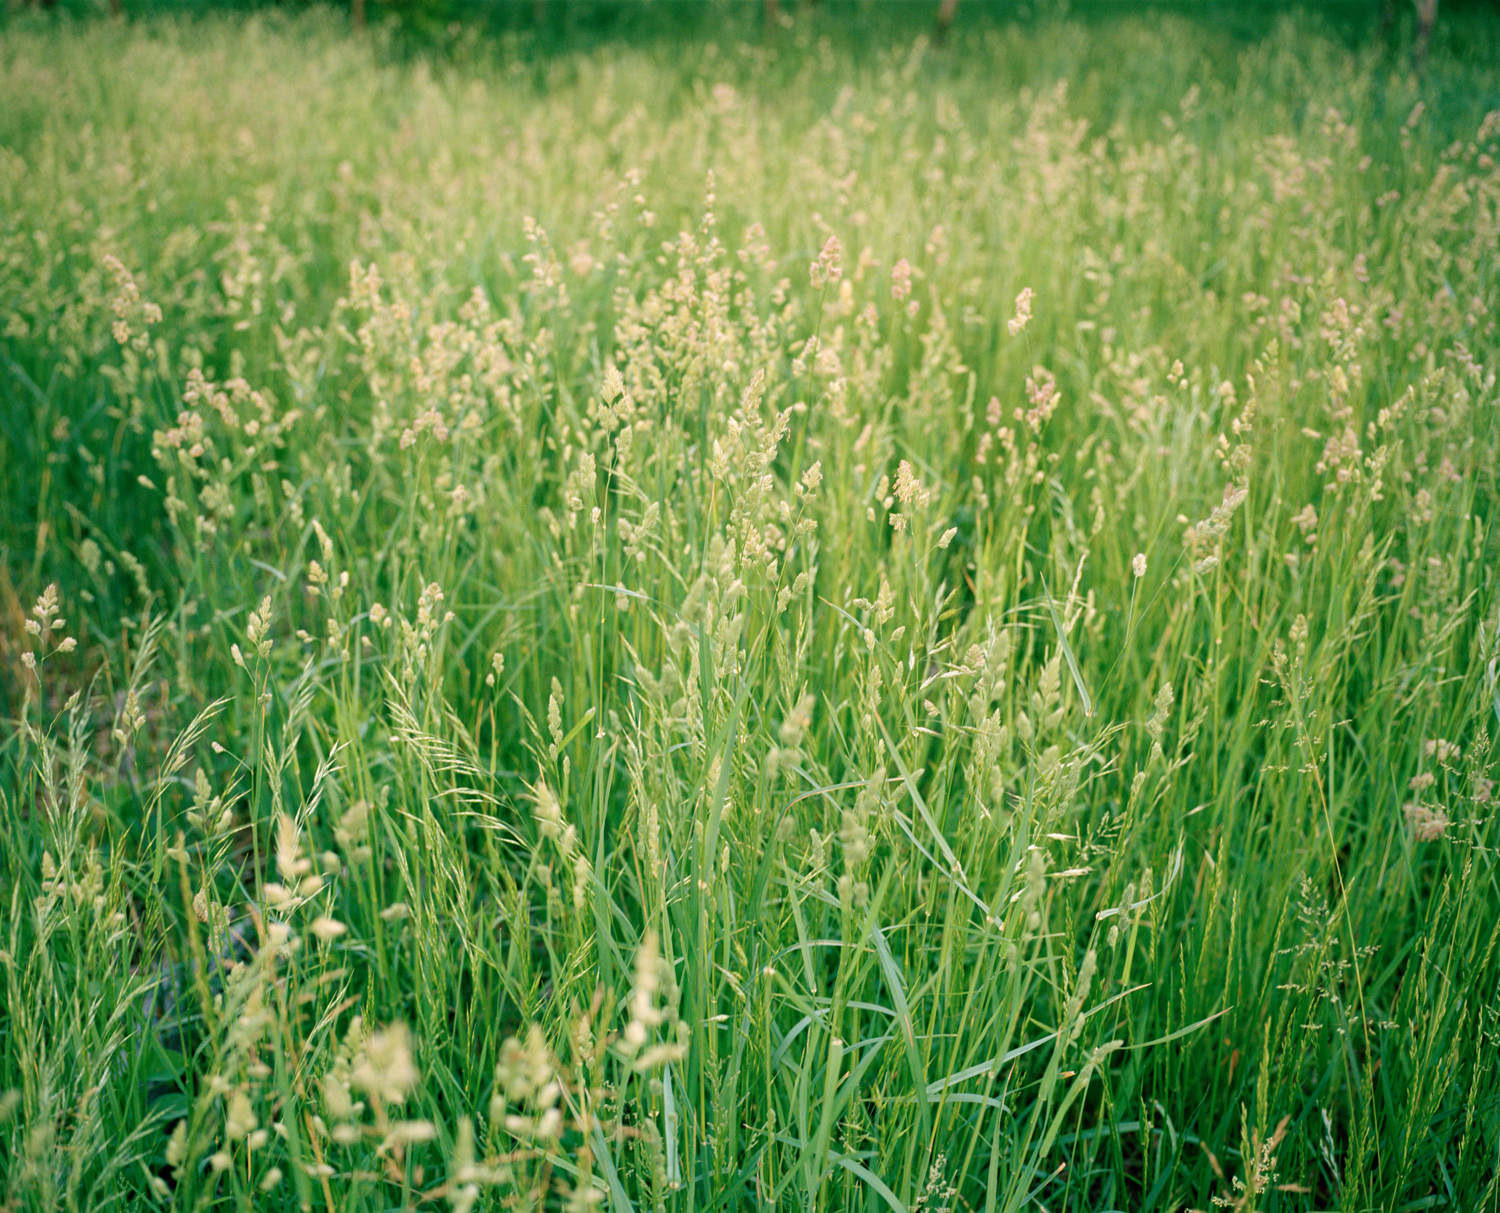 24-tall grass at park.jpg